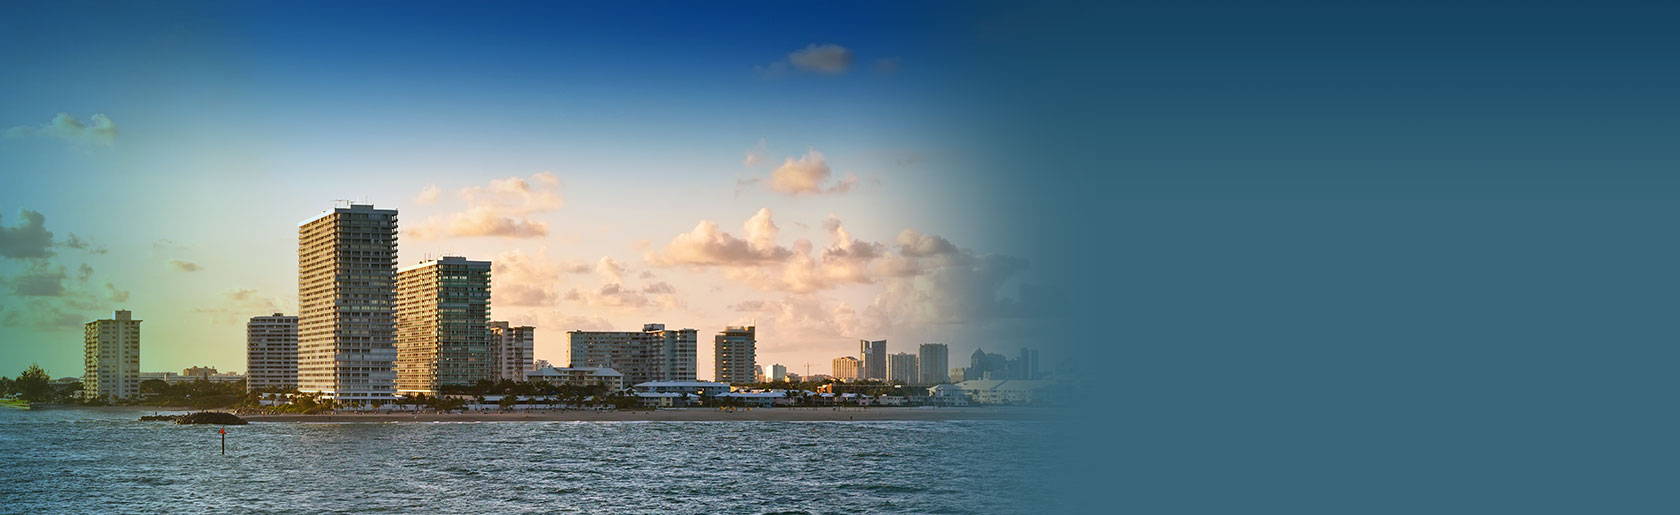 Ft. Lauderdale Personal Injury Lawyer